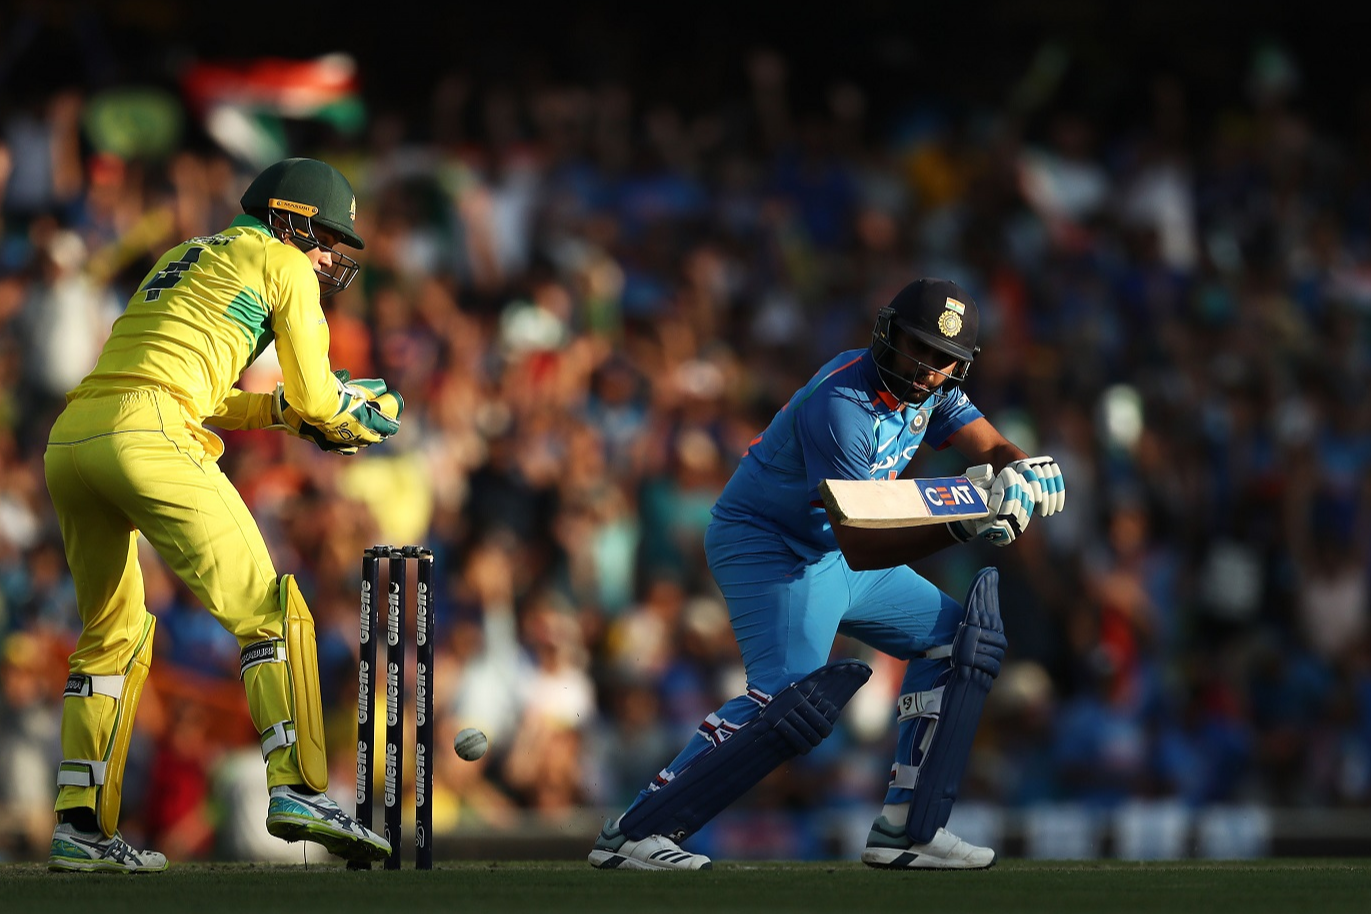 India vs Australia - 1st ODI Review